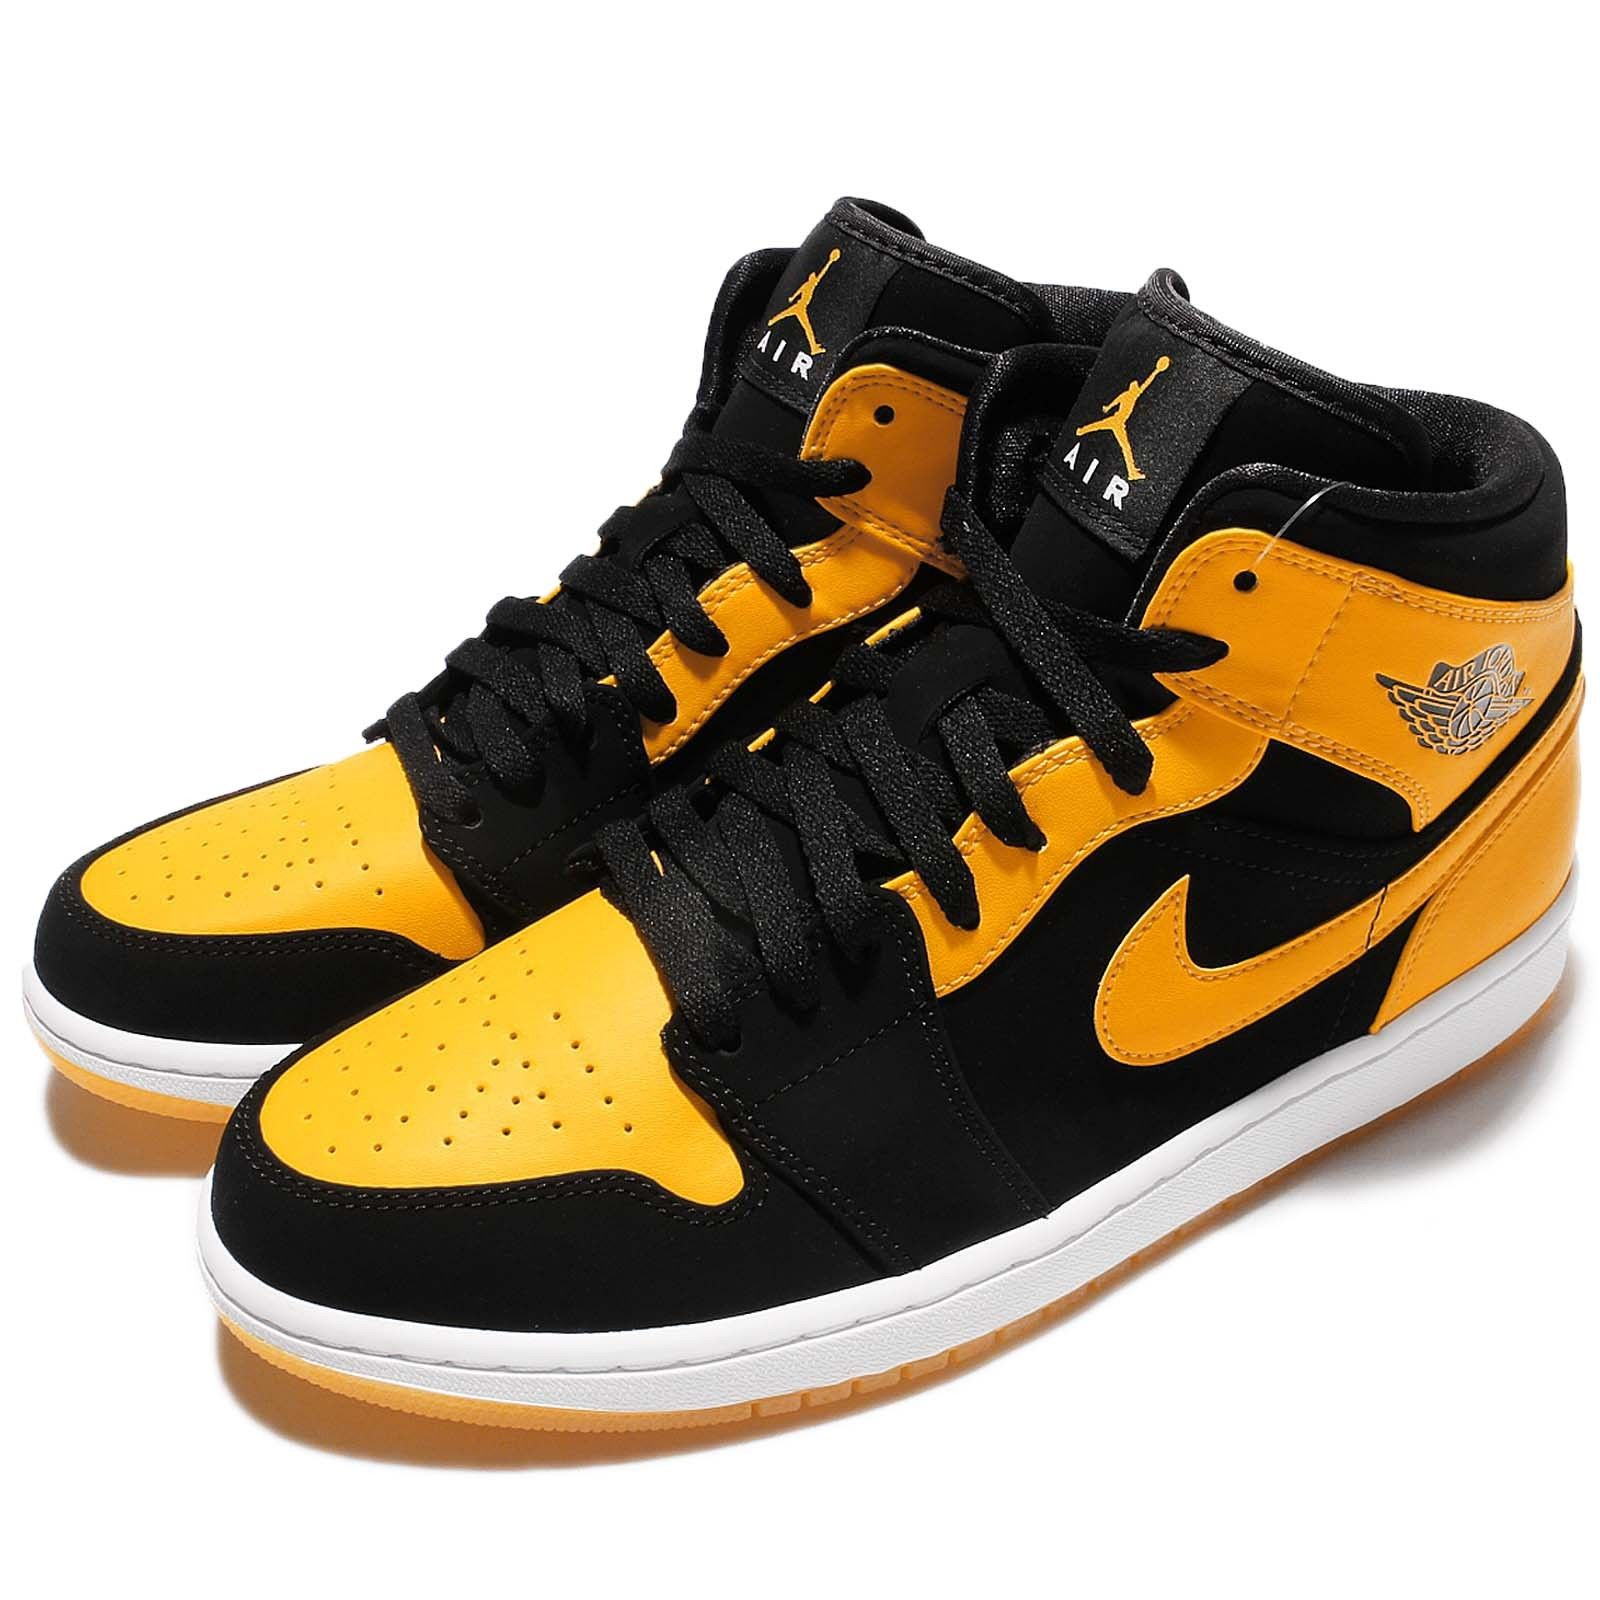 low priced 49b18 8b607 Get Your Hands on the Air Jordan 1 Retro 'New Love' Early ...